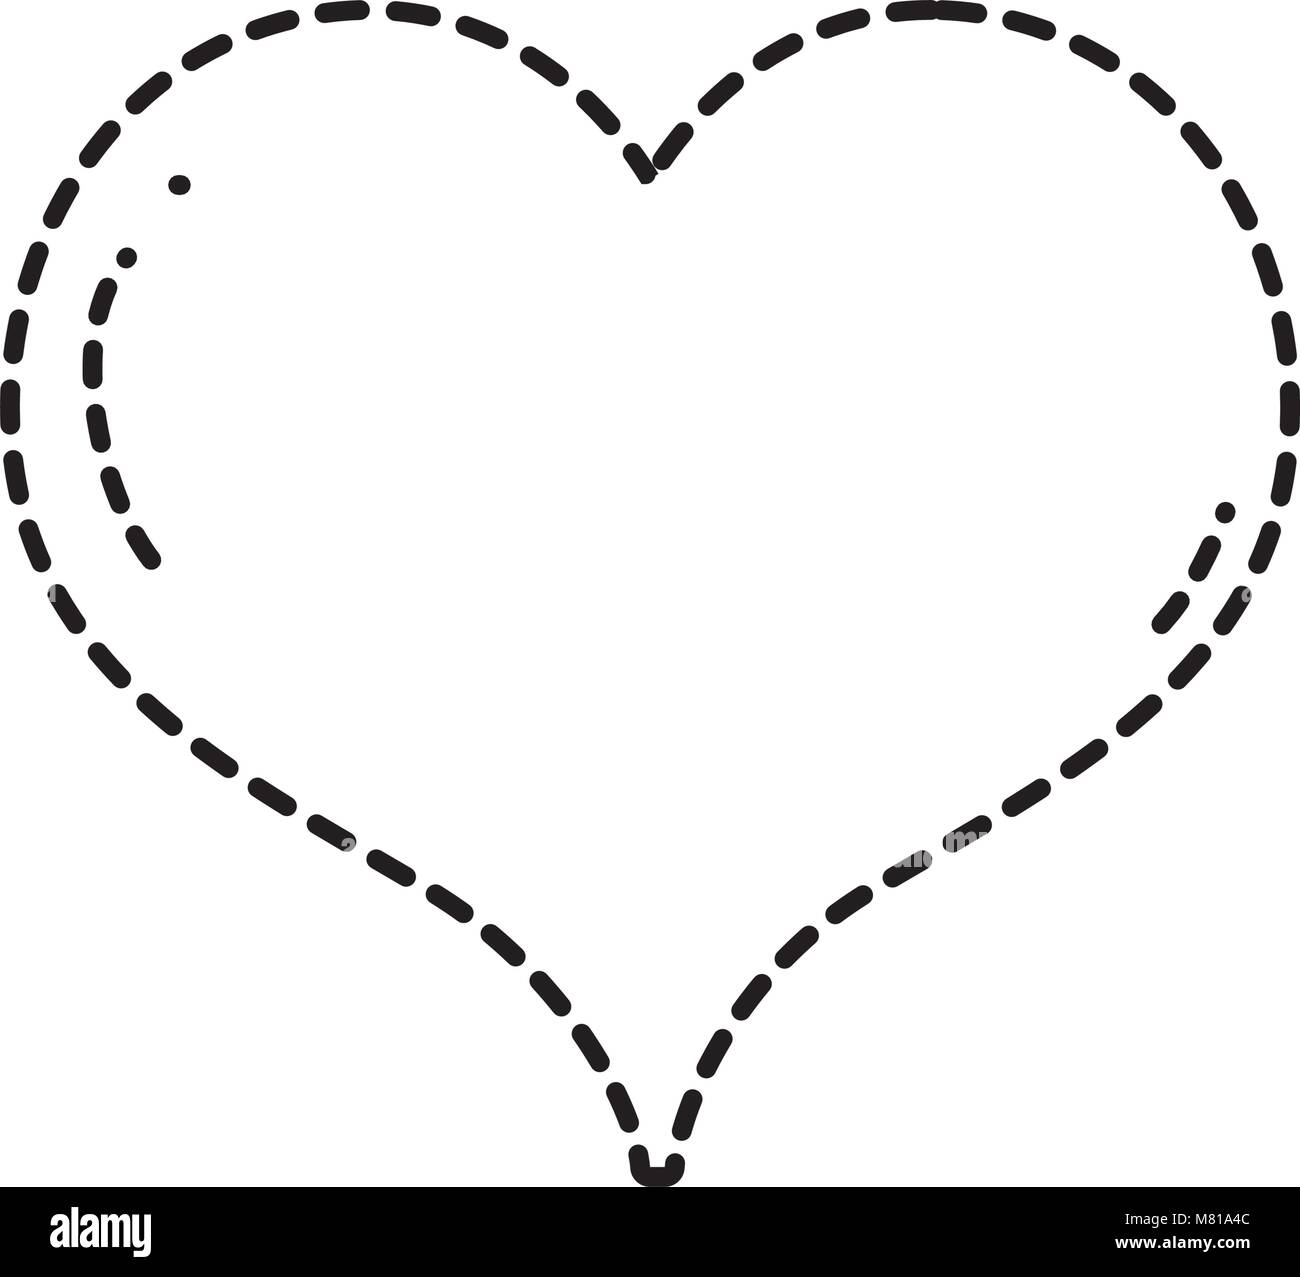 Dotted Shape Heart Love Symbol Of Passion Art Stock Vector Art